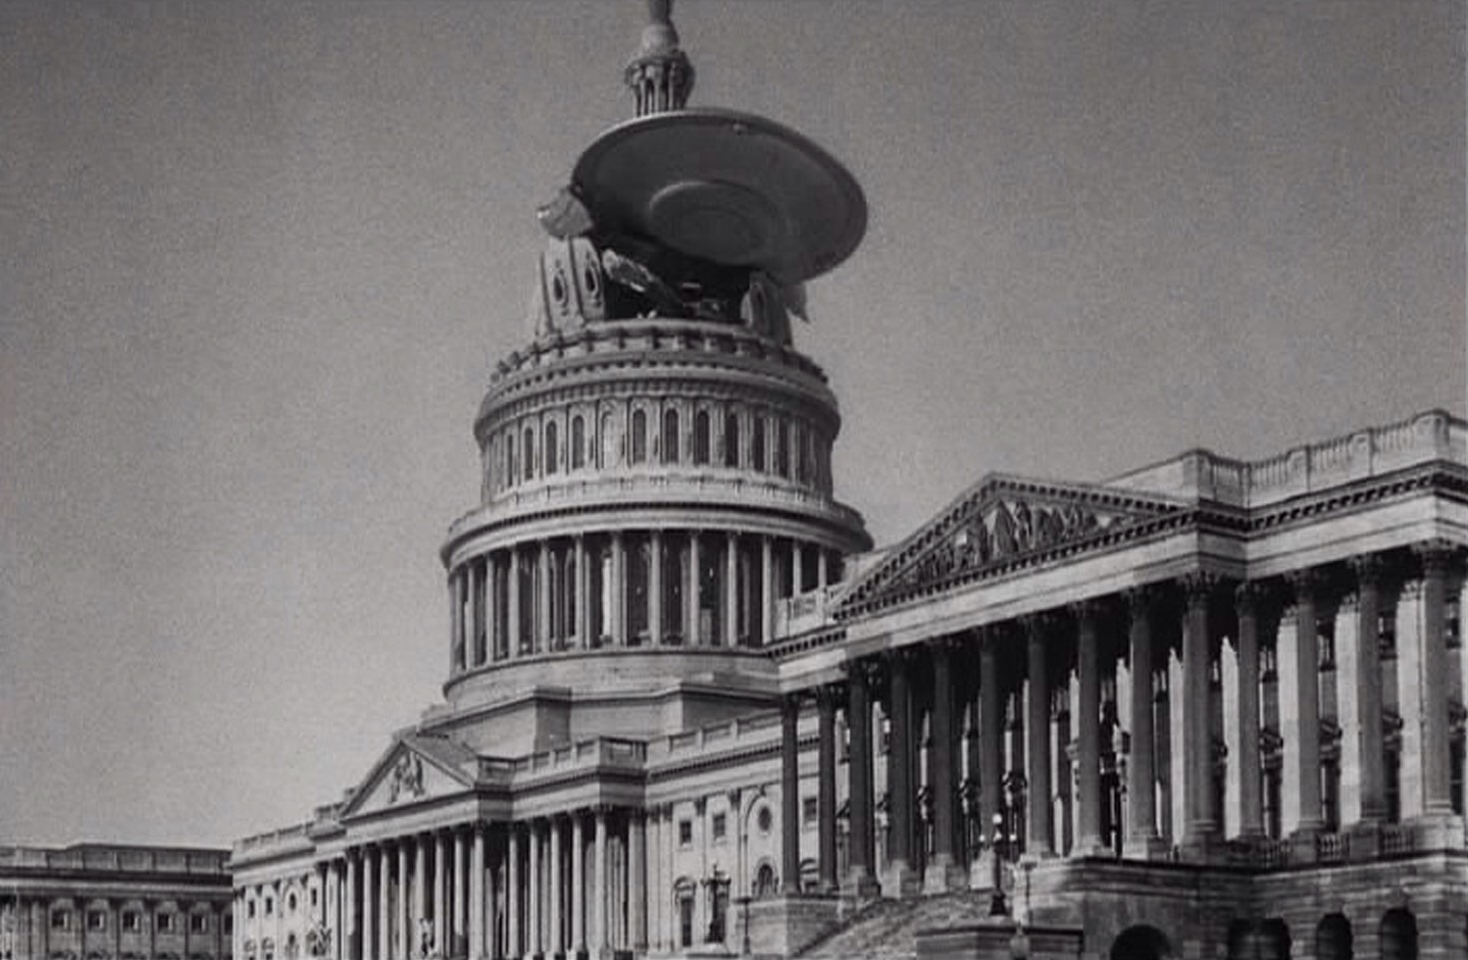 A flying saucer hits the Capitol Building in Earth Vs the Flying Saucers (1956)